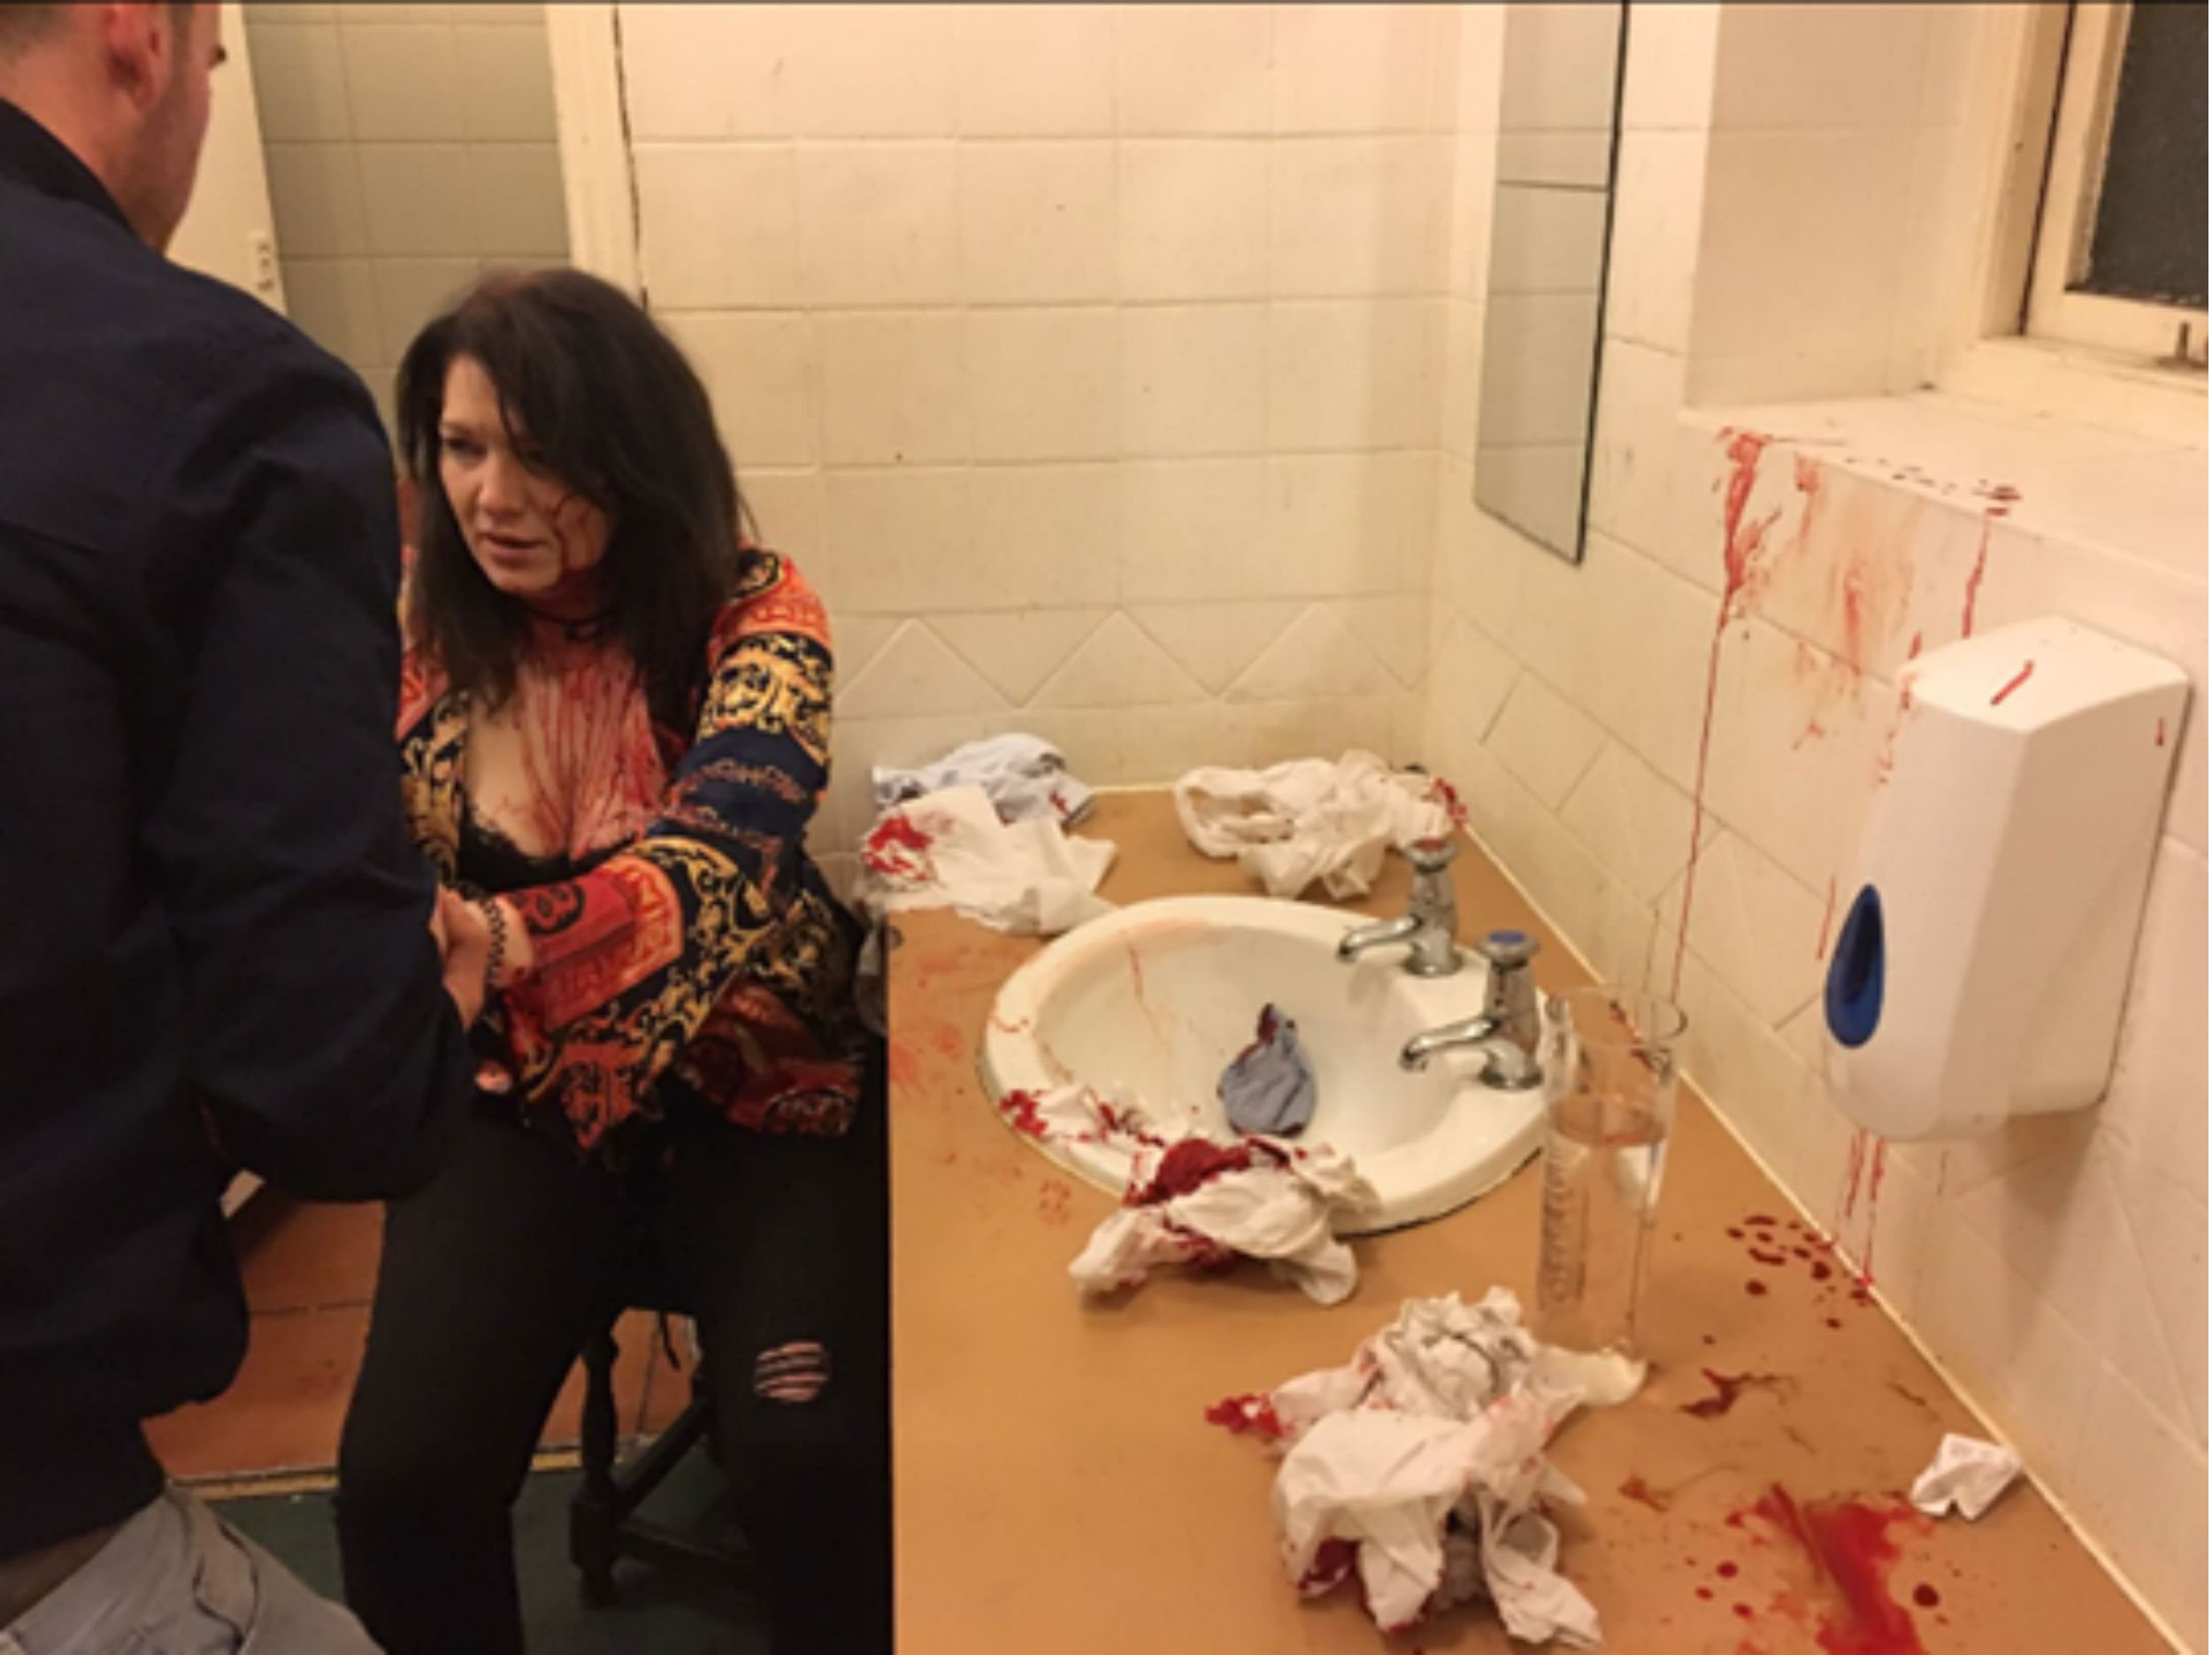 A MOTHER has shared horrific images of the head injuries she suffered after she was attacked in a pub toilet by a jealous girlfriend. Anne-Marie Szwed had her head smashed off a sink five times by a woman in apparent revenge for attracting her boyfriend's attention. The mum-of-one needed a gaping wound in her scalp held together by paramedics as she was taken to hospital. The attack, on Friday night at a pub in Coventry, left the bathroom covered in blood. The sickening assault happened after the attacker watched her boyfriend look at Anne-Marie as she walked to the toilet at The Oak Inn in the city centre.